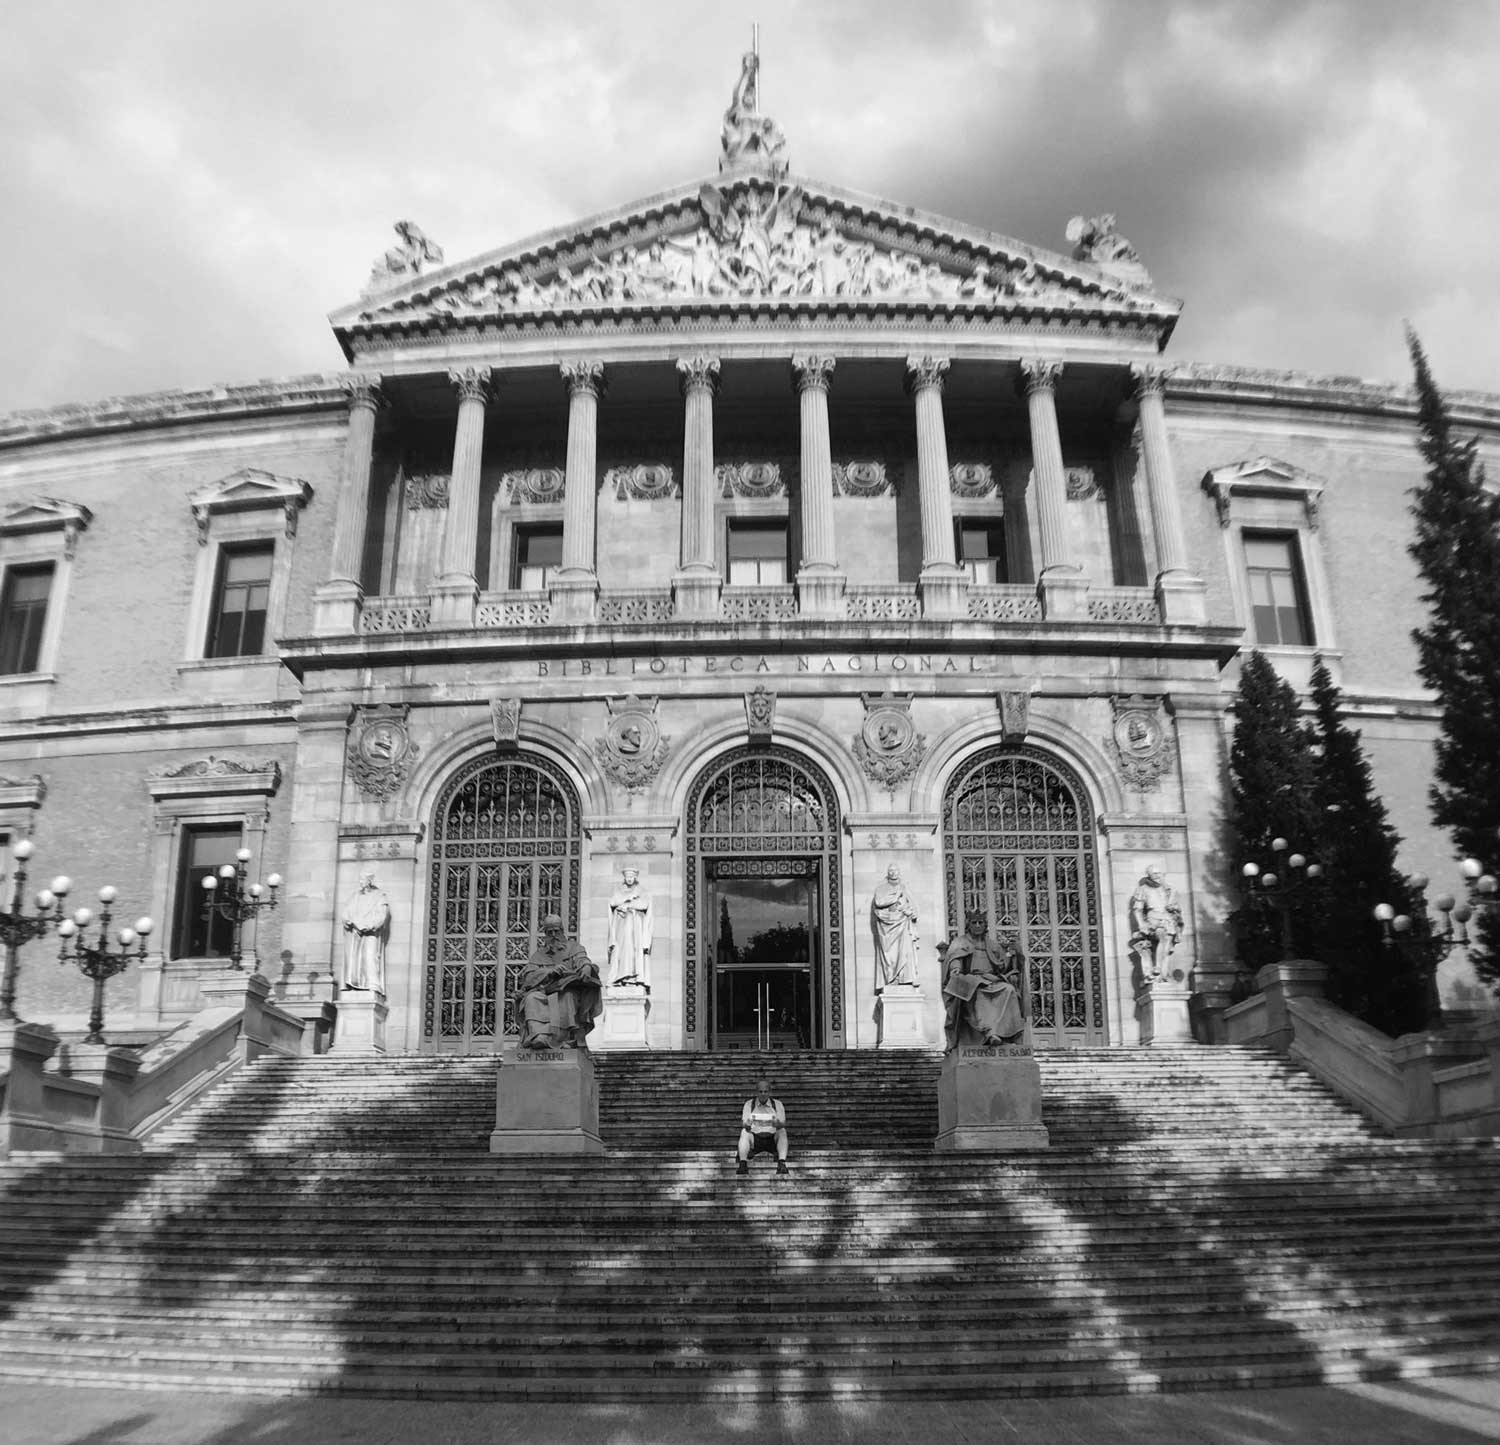 OG-National_Library_of_Spain-Madrid_Spain-062015-BW-1500.jpg